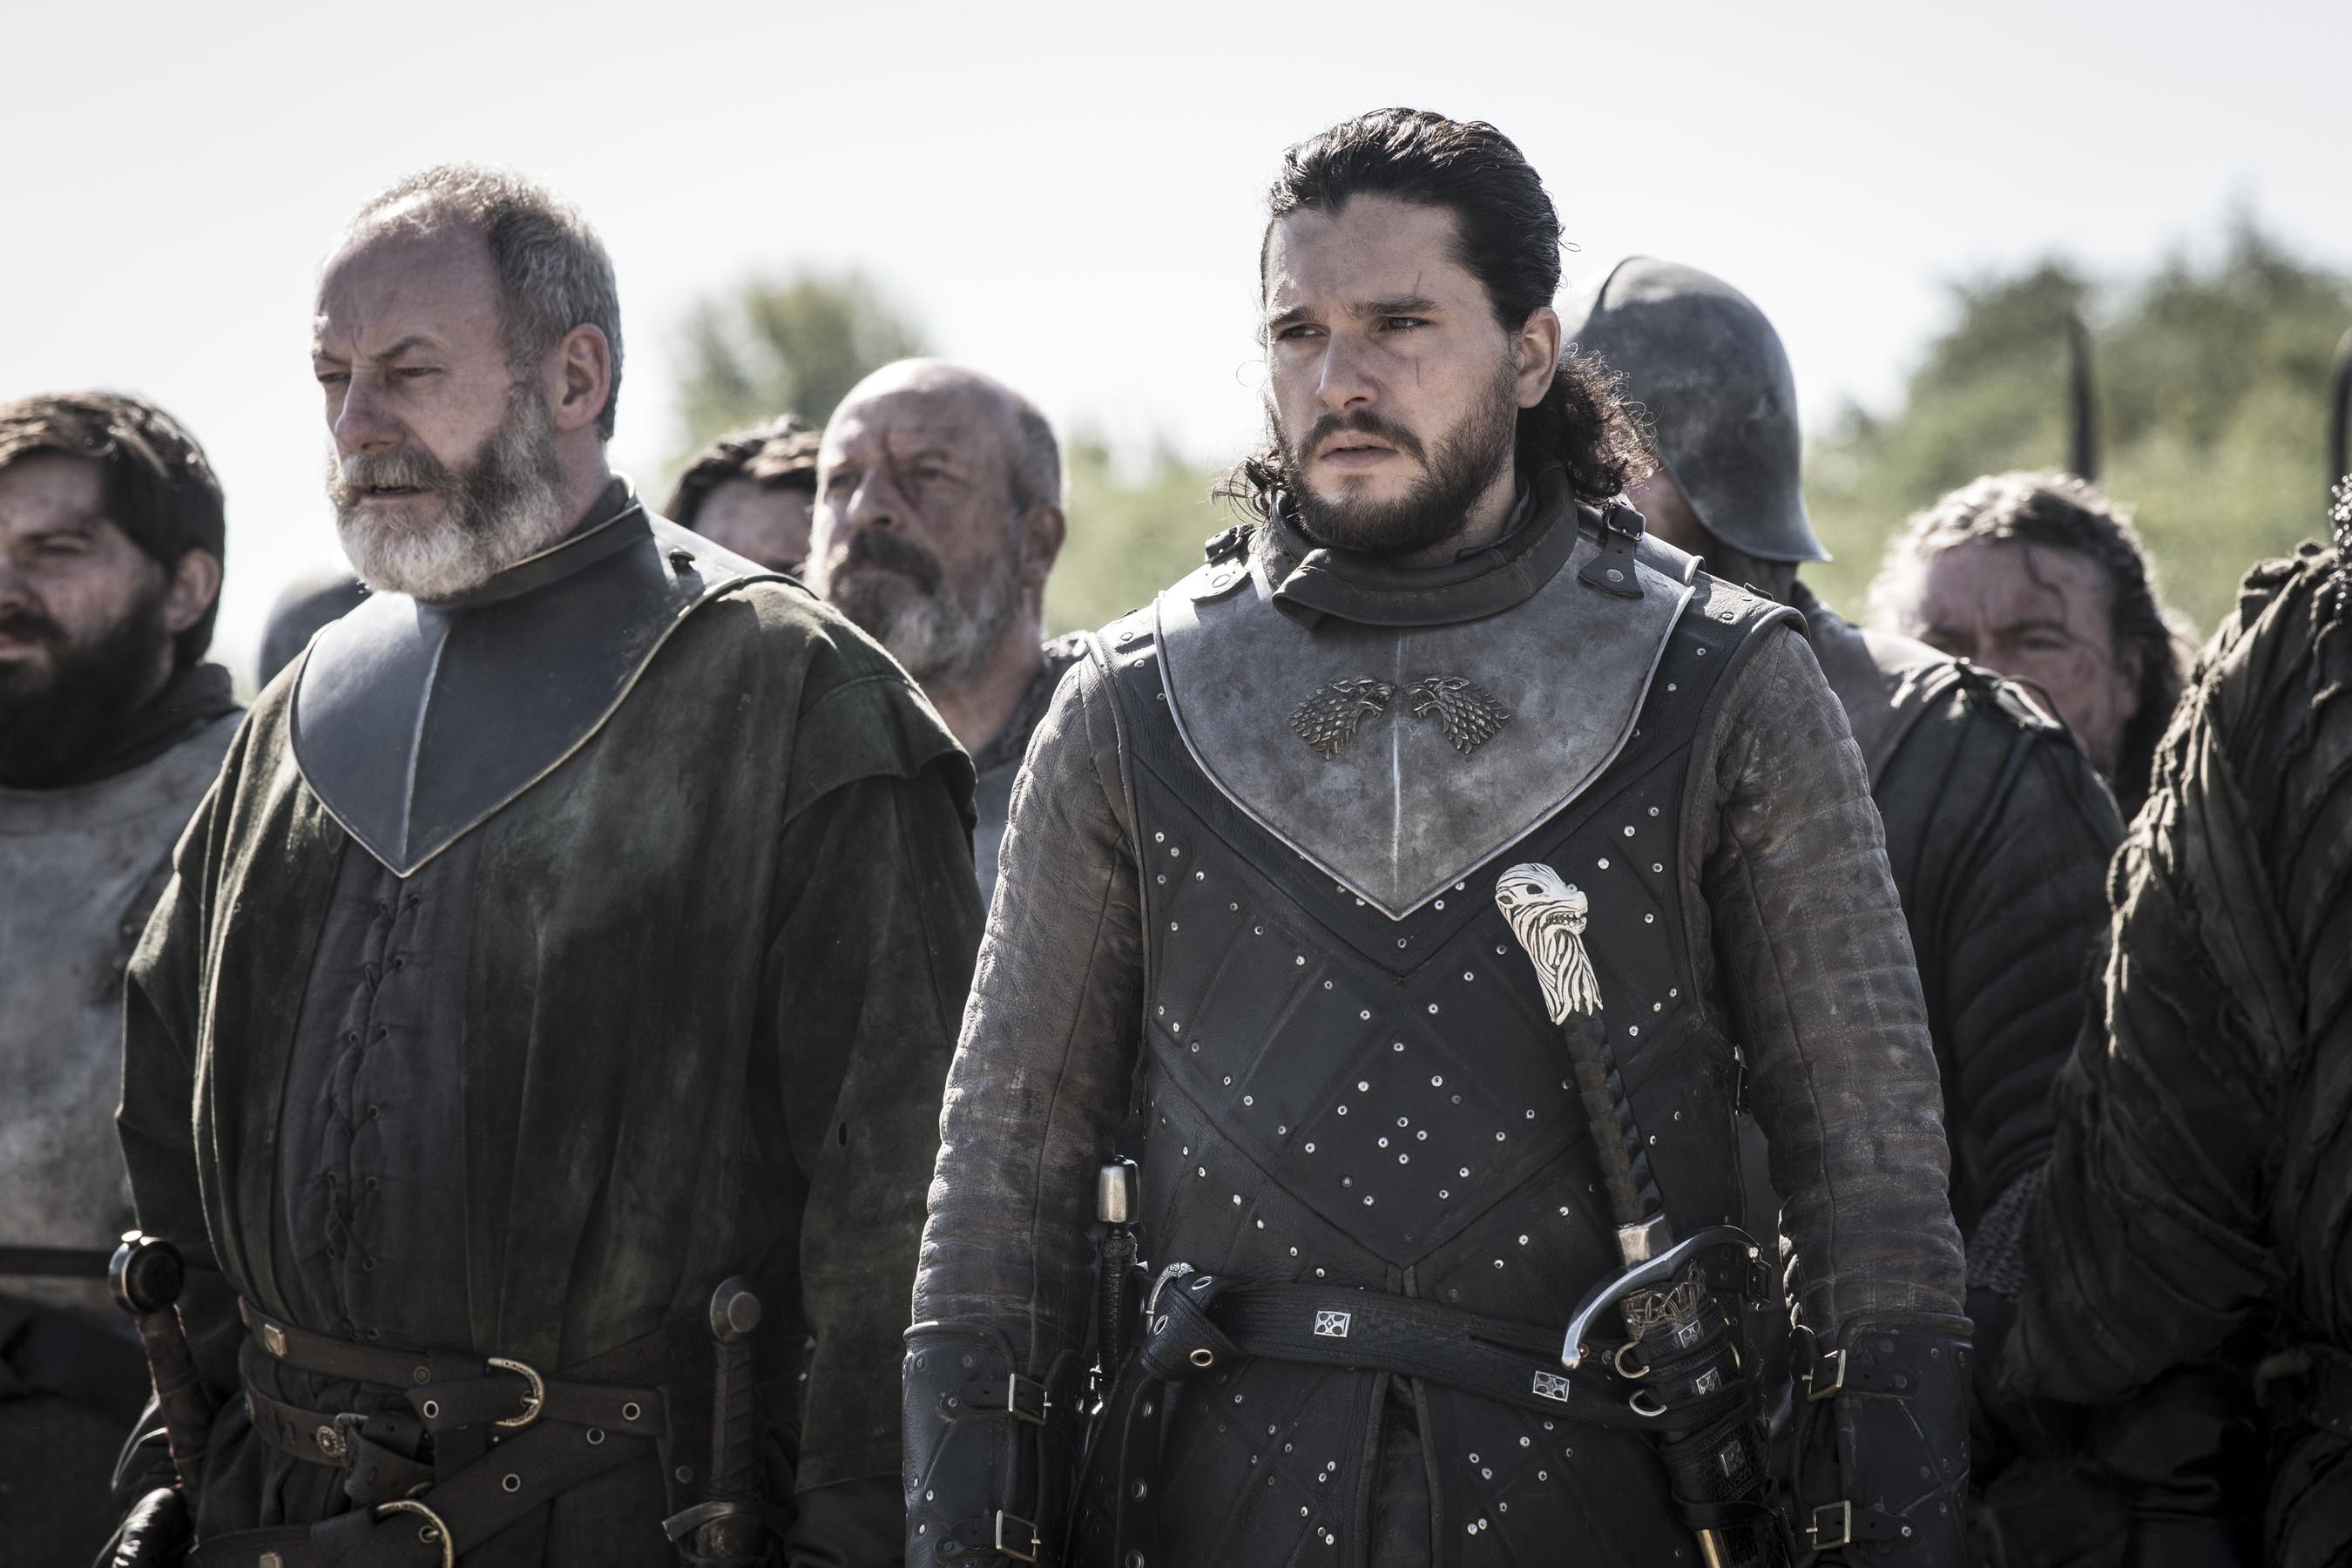 Wann Kommt Die 5 Staffel Von Game Of Thrones